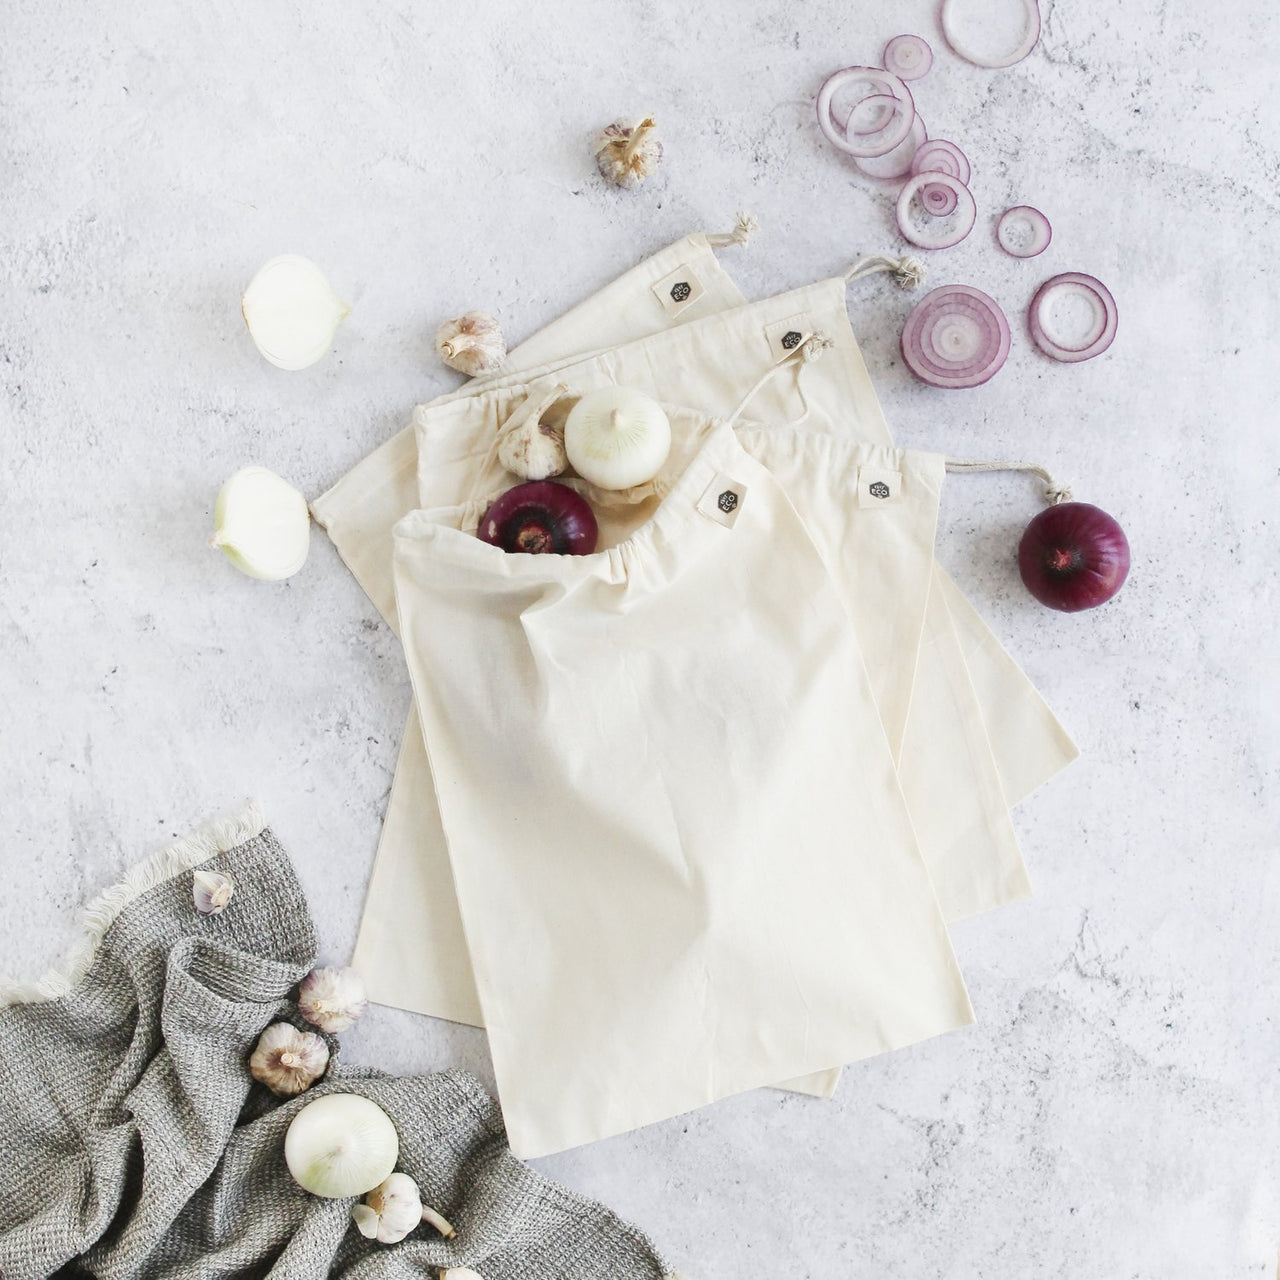 Organic Cotton Muslin Produce Bags 4 Pack